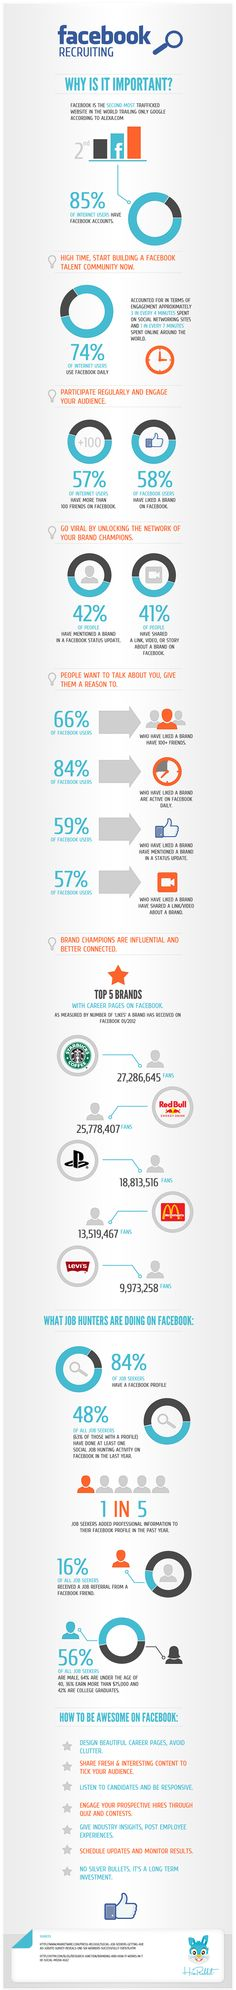 Recruiting@Facebook - some facts.